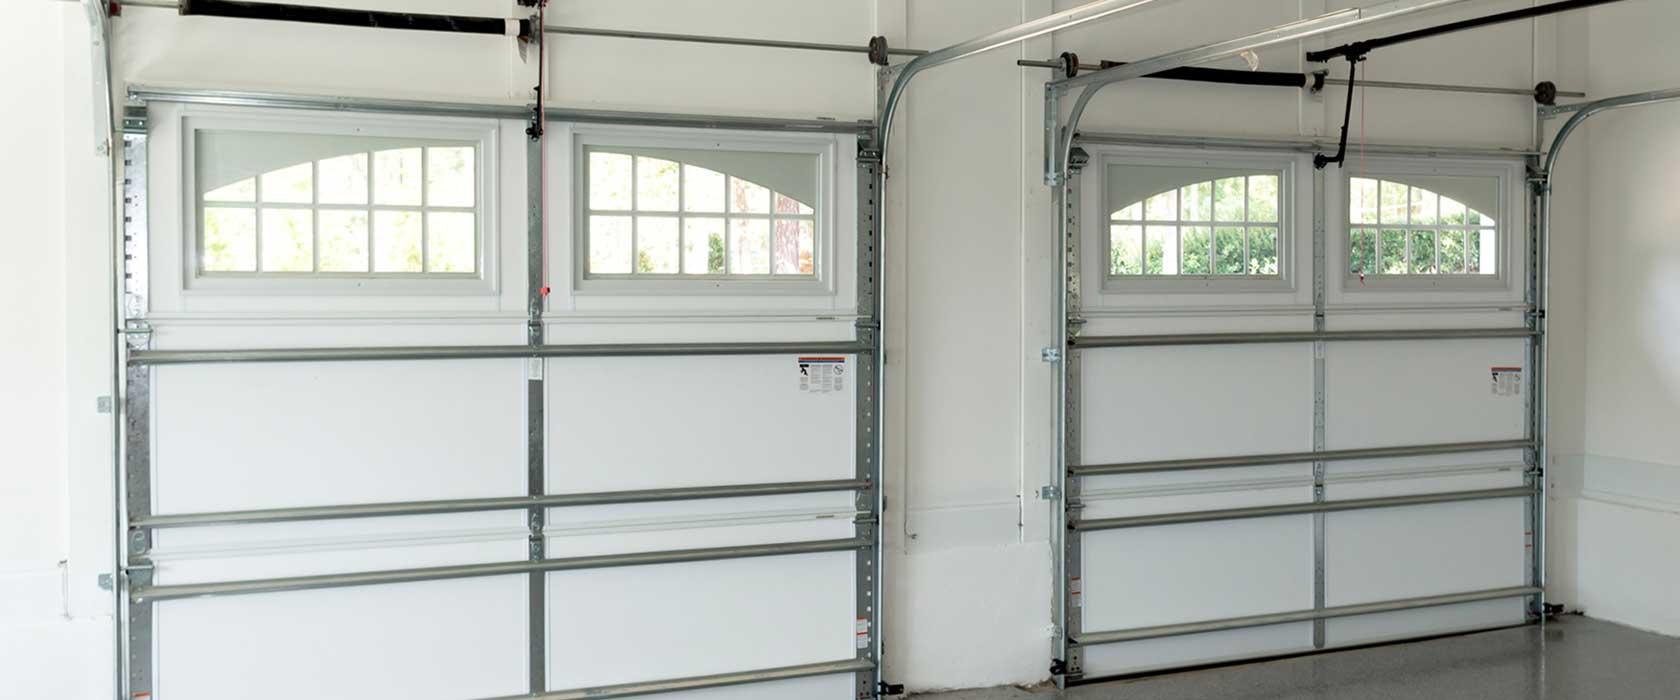 Best Garage Door Service in Chicago Northwest Suburbs